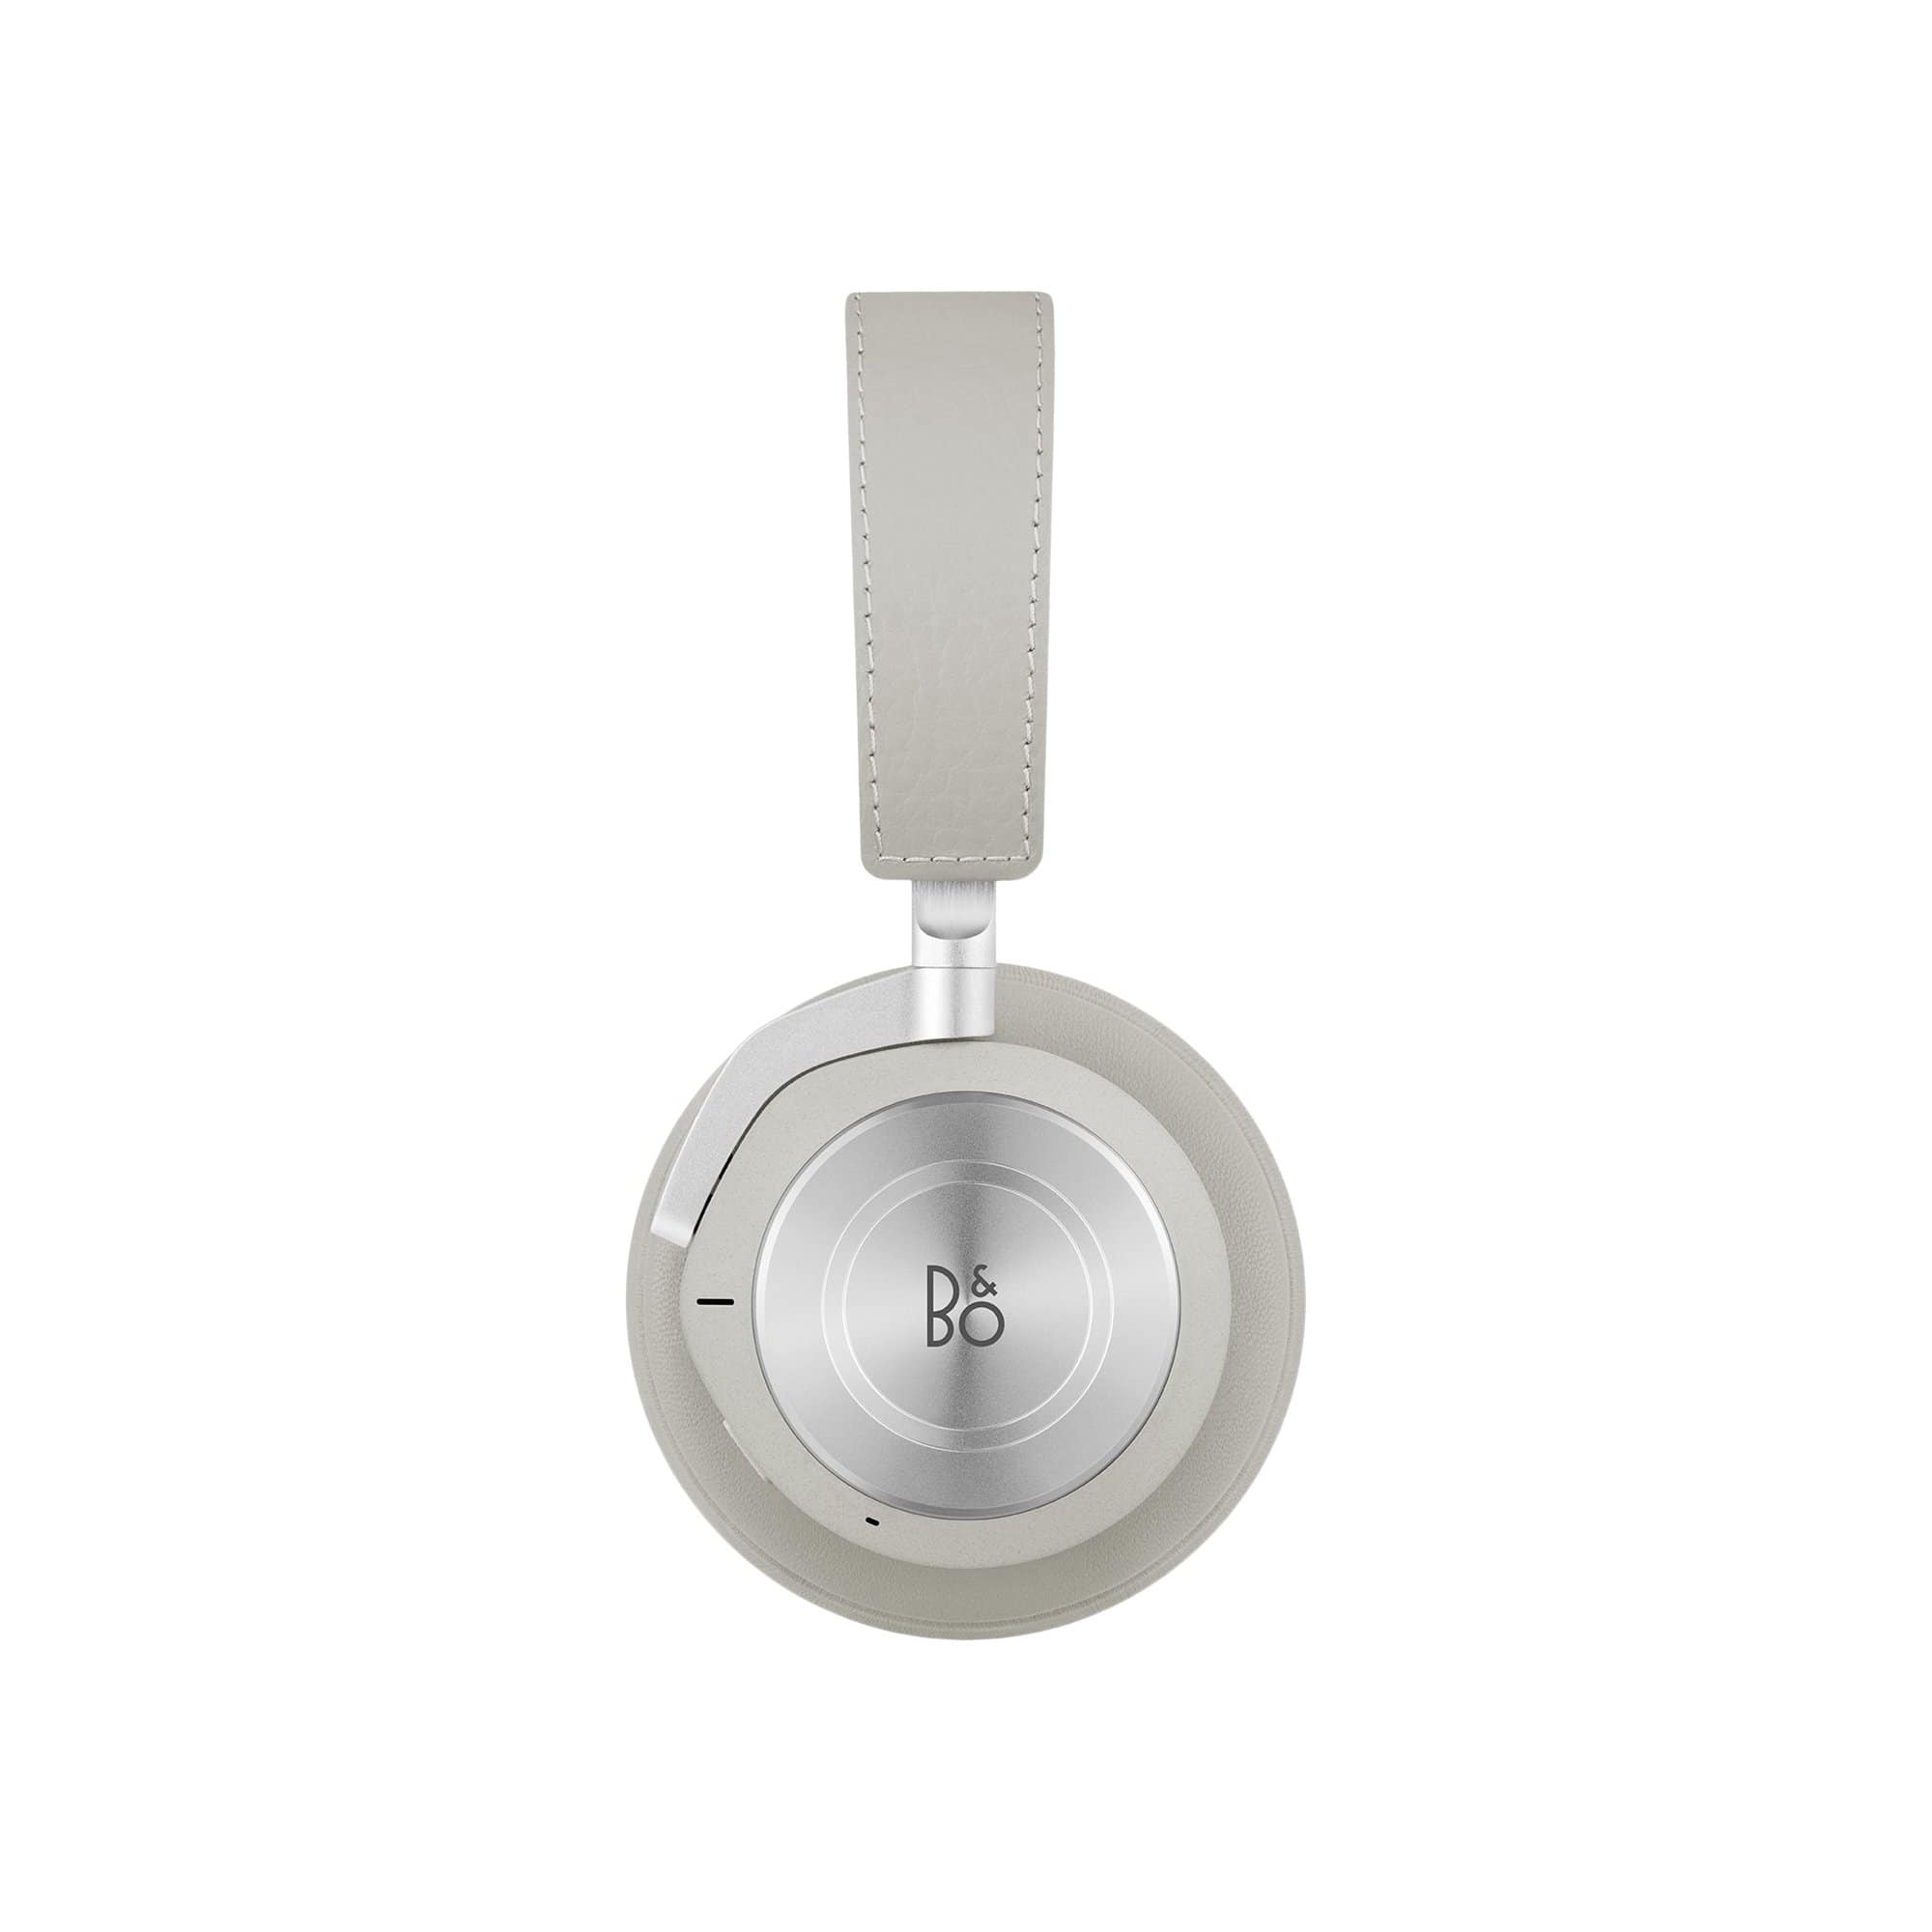 BANG & OLUFSEN Headphones Beoplay H9 Grey Mist Wireless Headphones